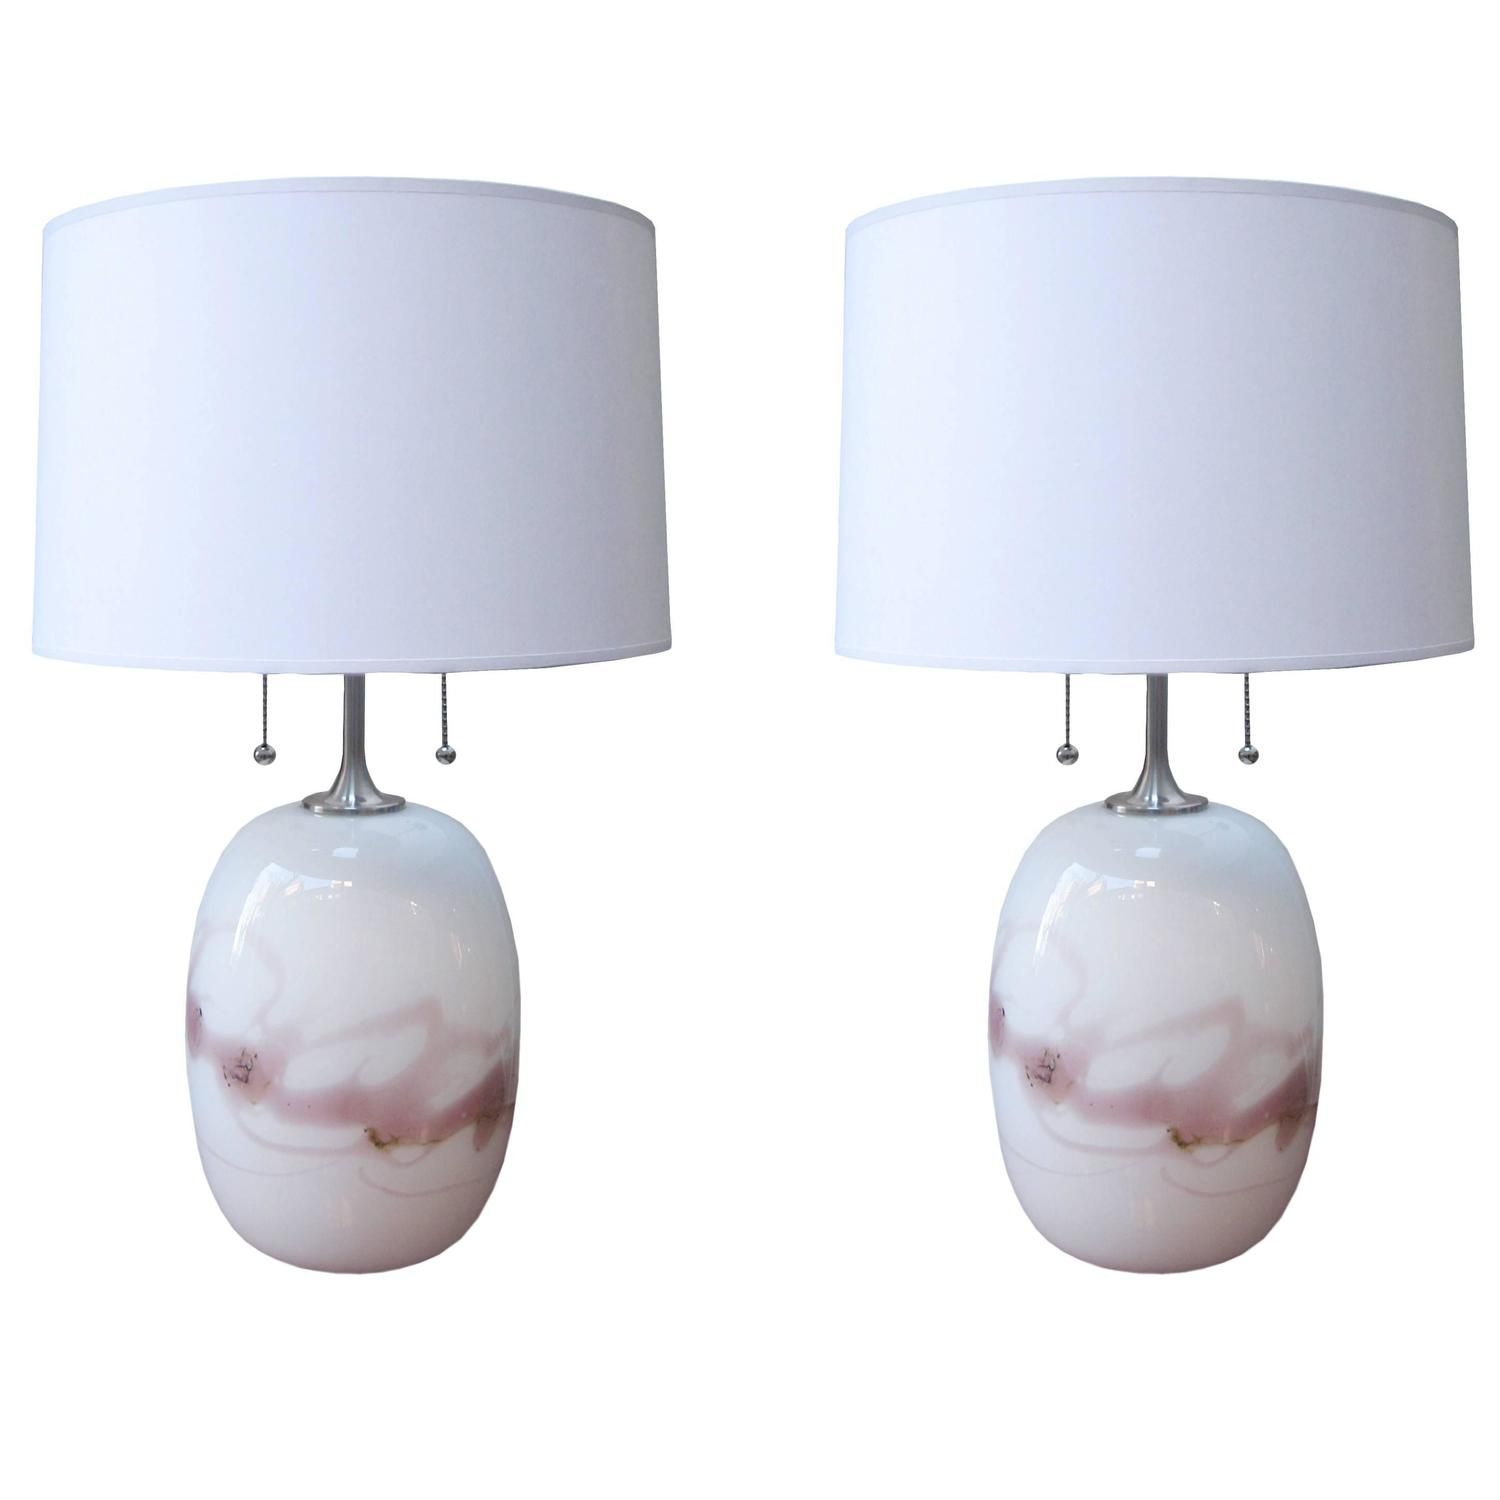 Pair Of Holmgaard Modernist Glass Table Lamps - From A